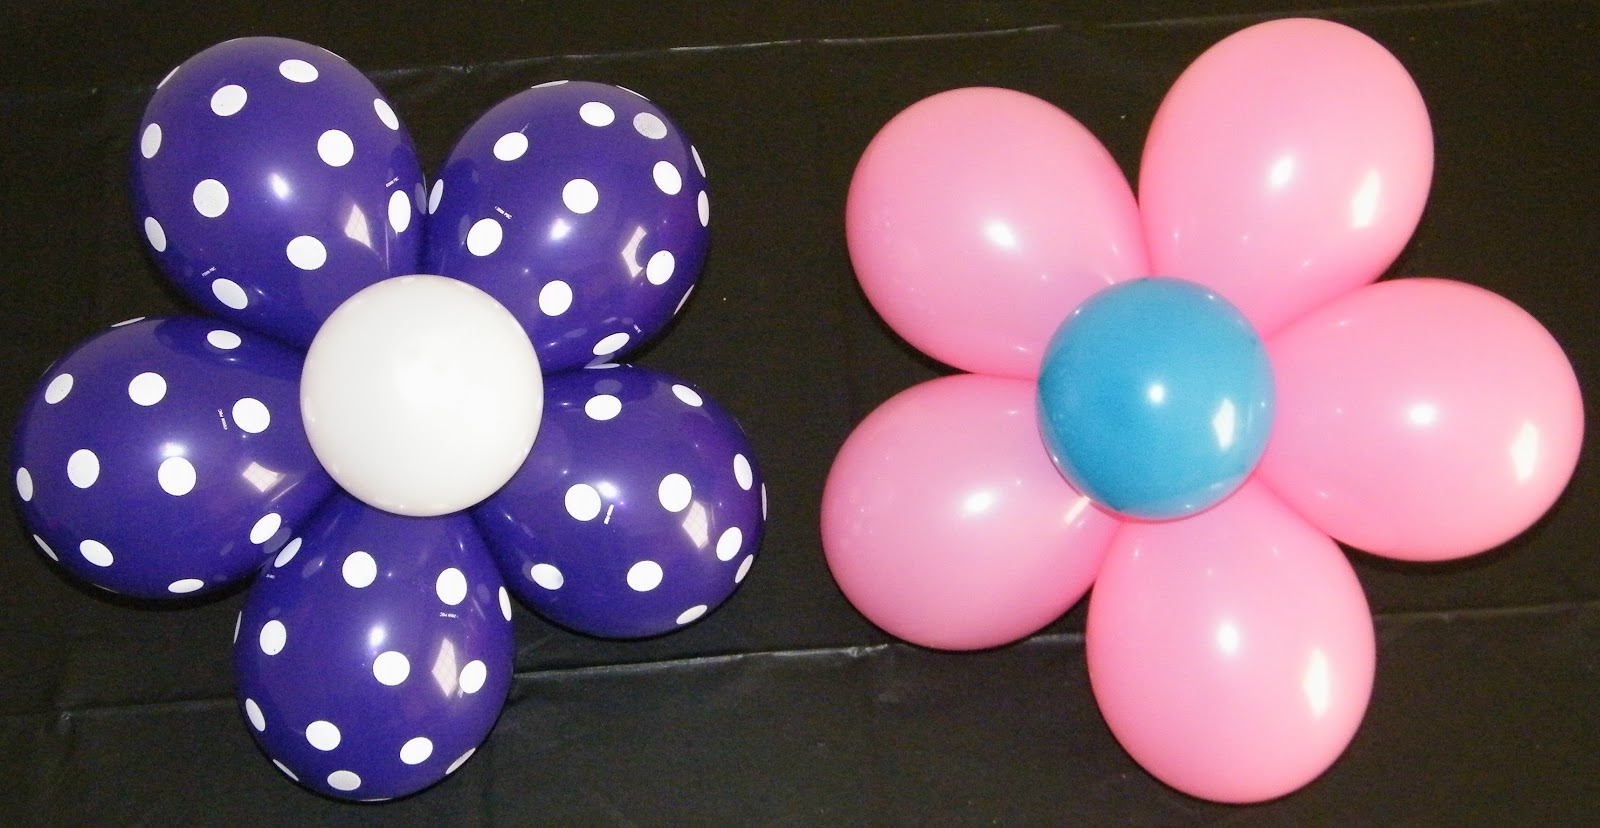 Make Your Own Balloon Decorations